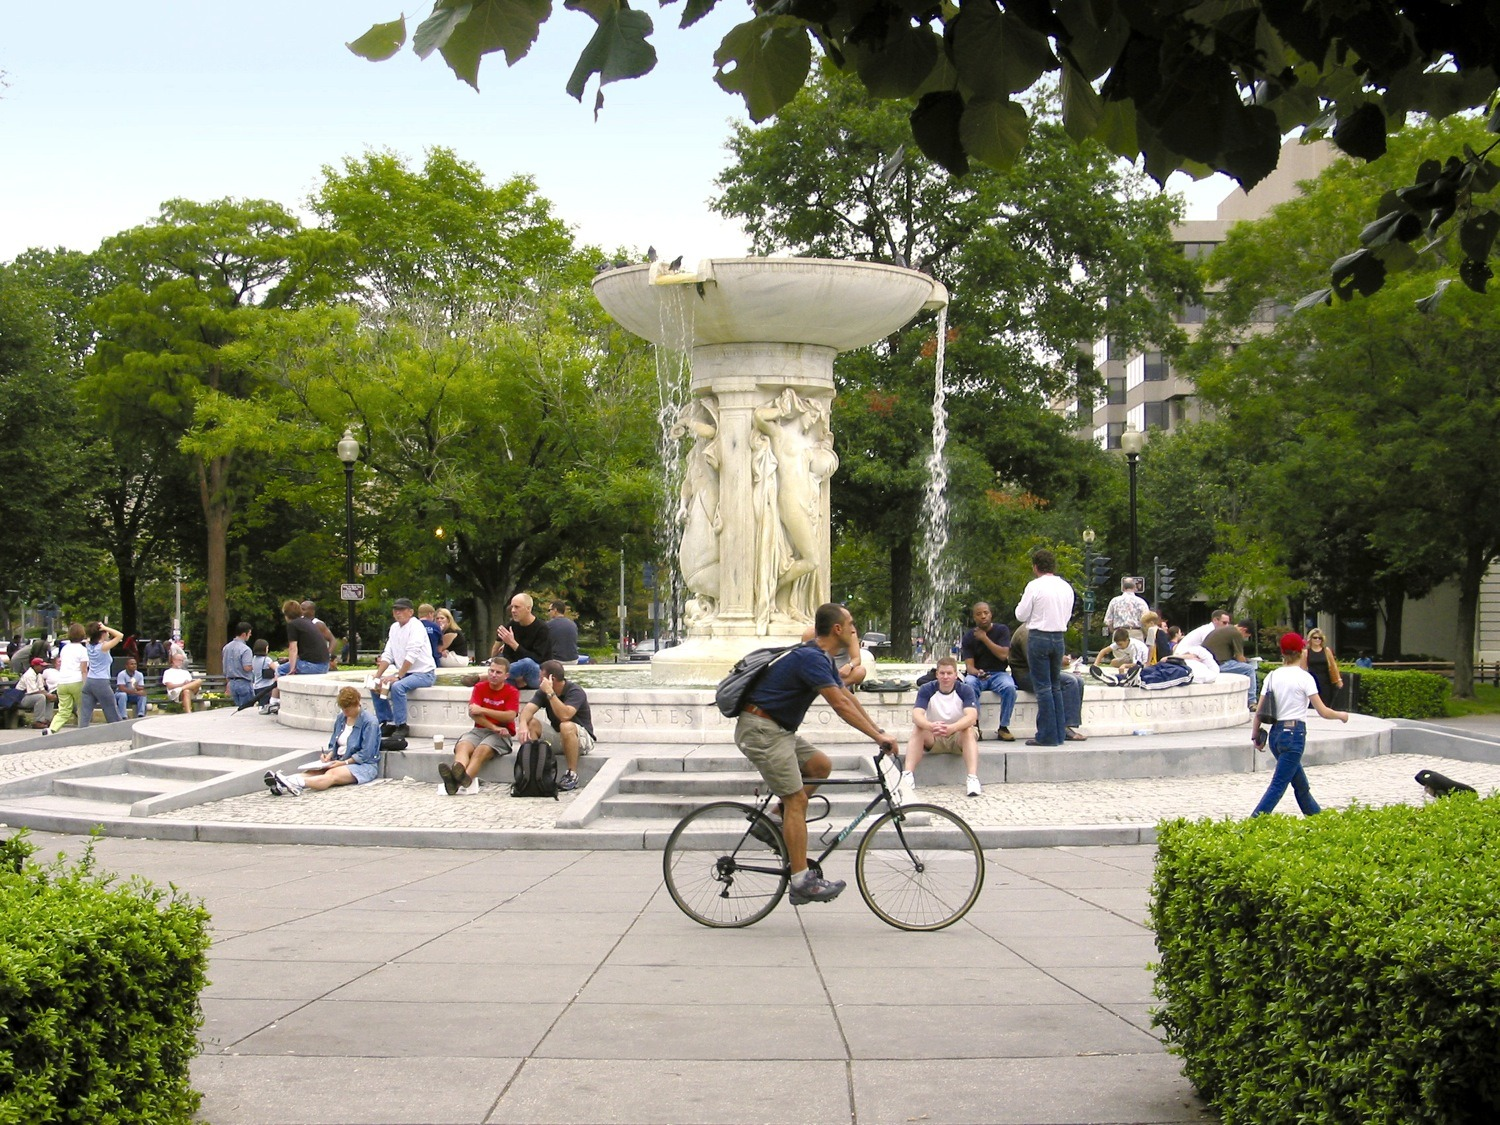 Cycling in Washington, DC